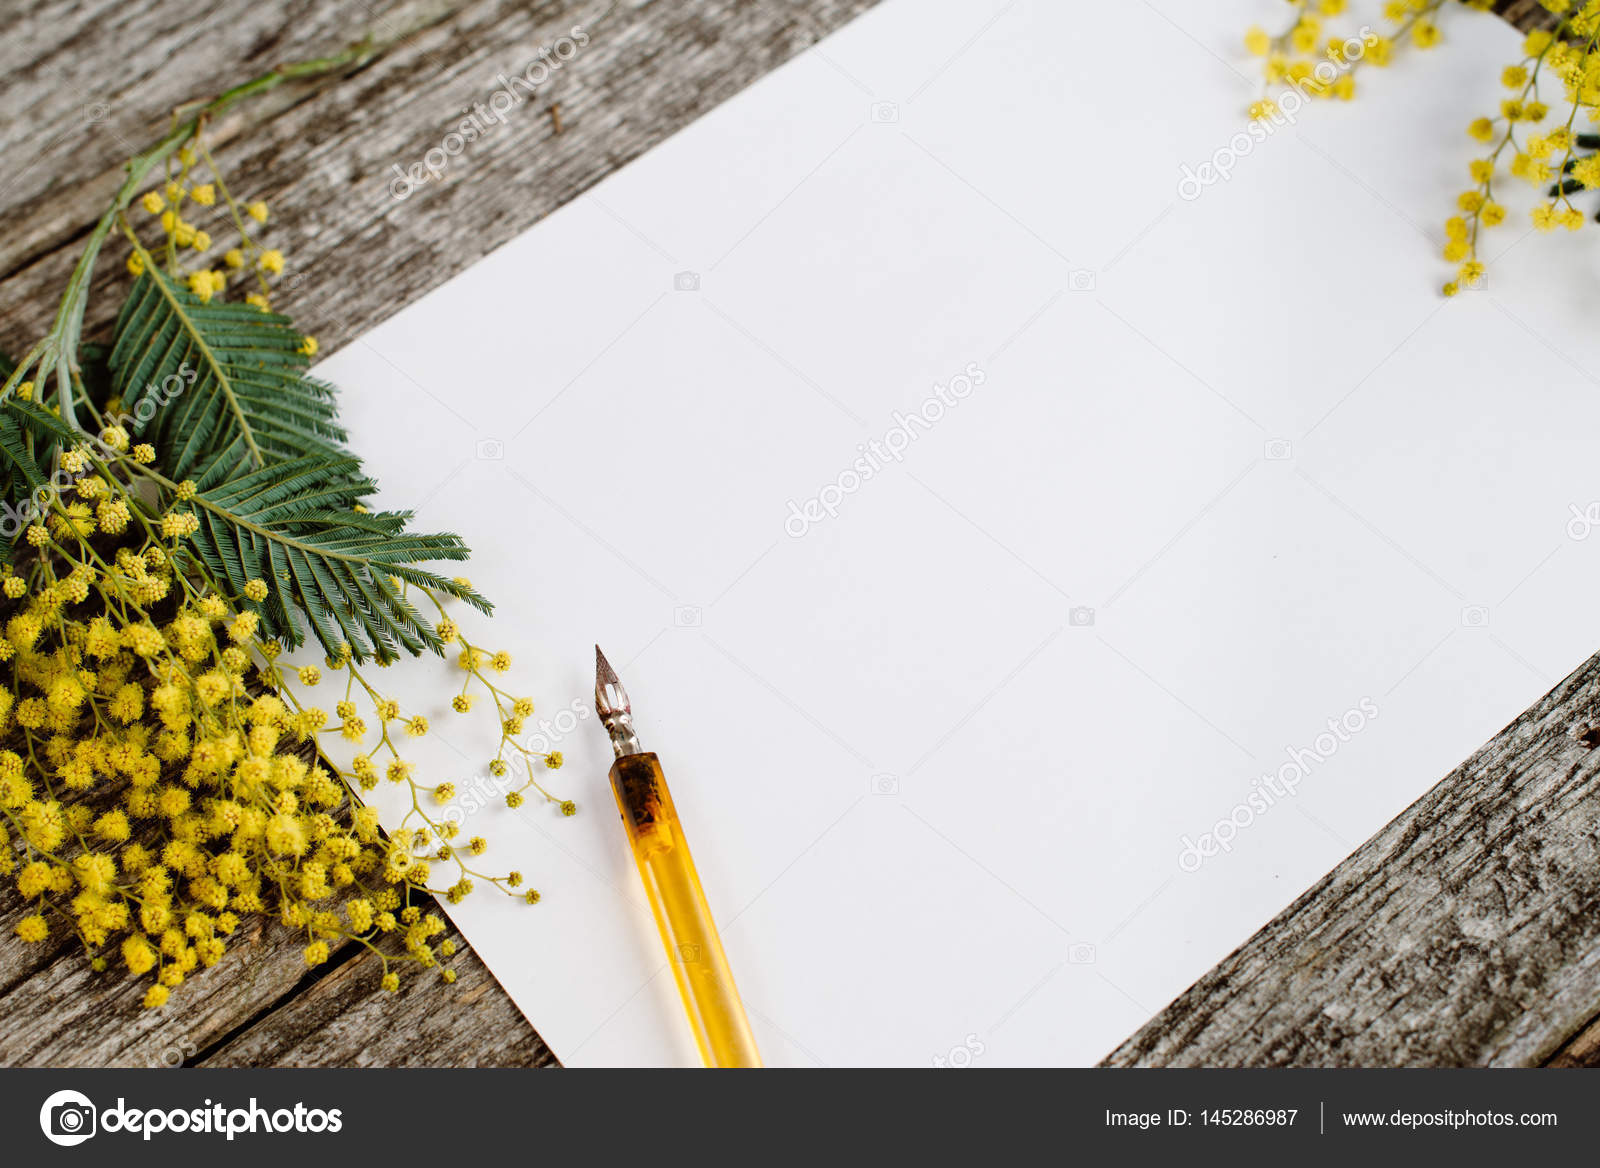 White Paper Mock Up With Yellow Flowers Mimosas And Vintage Pen Ink